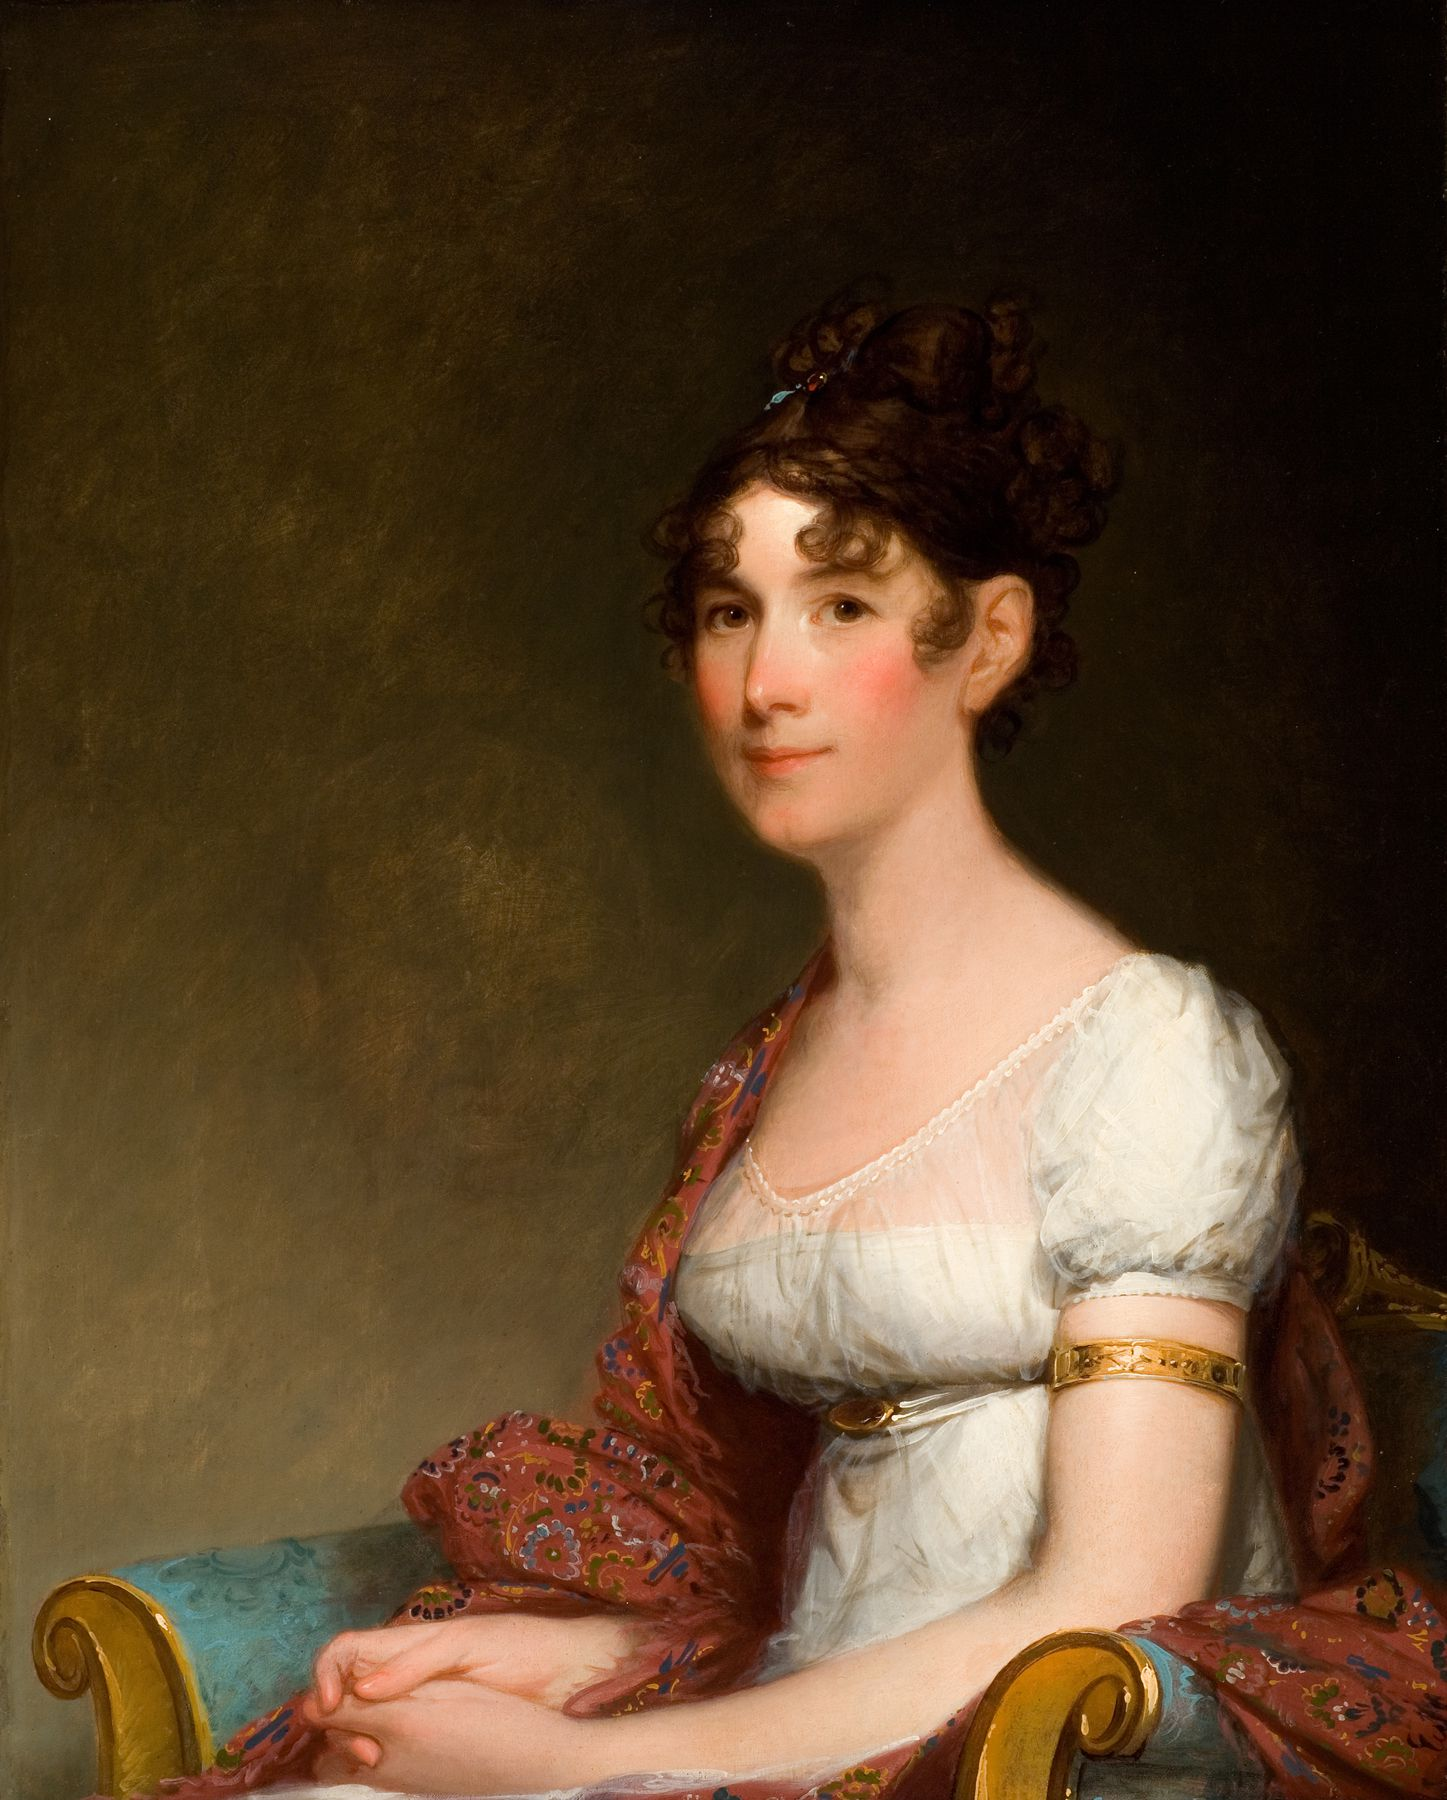 https://i0.wp.com/upload.wikimedia.org/wikipedia/commons/d/d7/Gilbert_Stuart_Mrs_Harrison_Gray_Otis.jpg